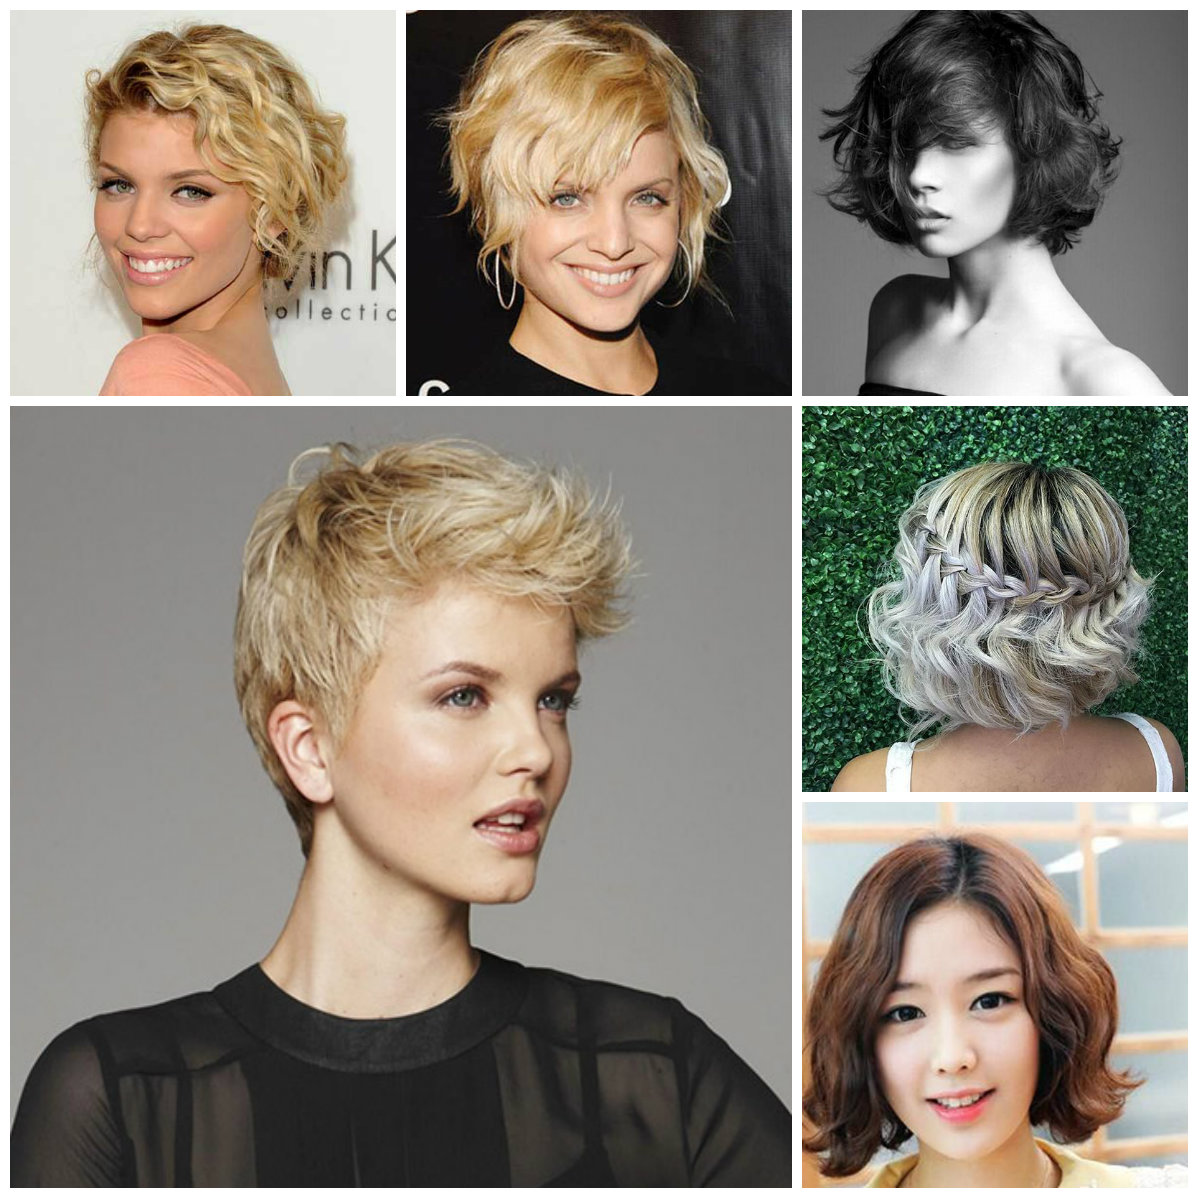 short hairstyles | 2017 haircuts, hairstyles and hair colors